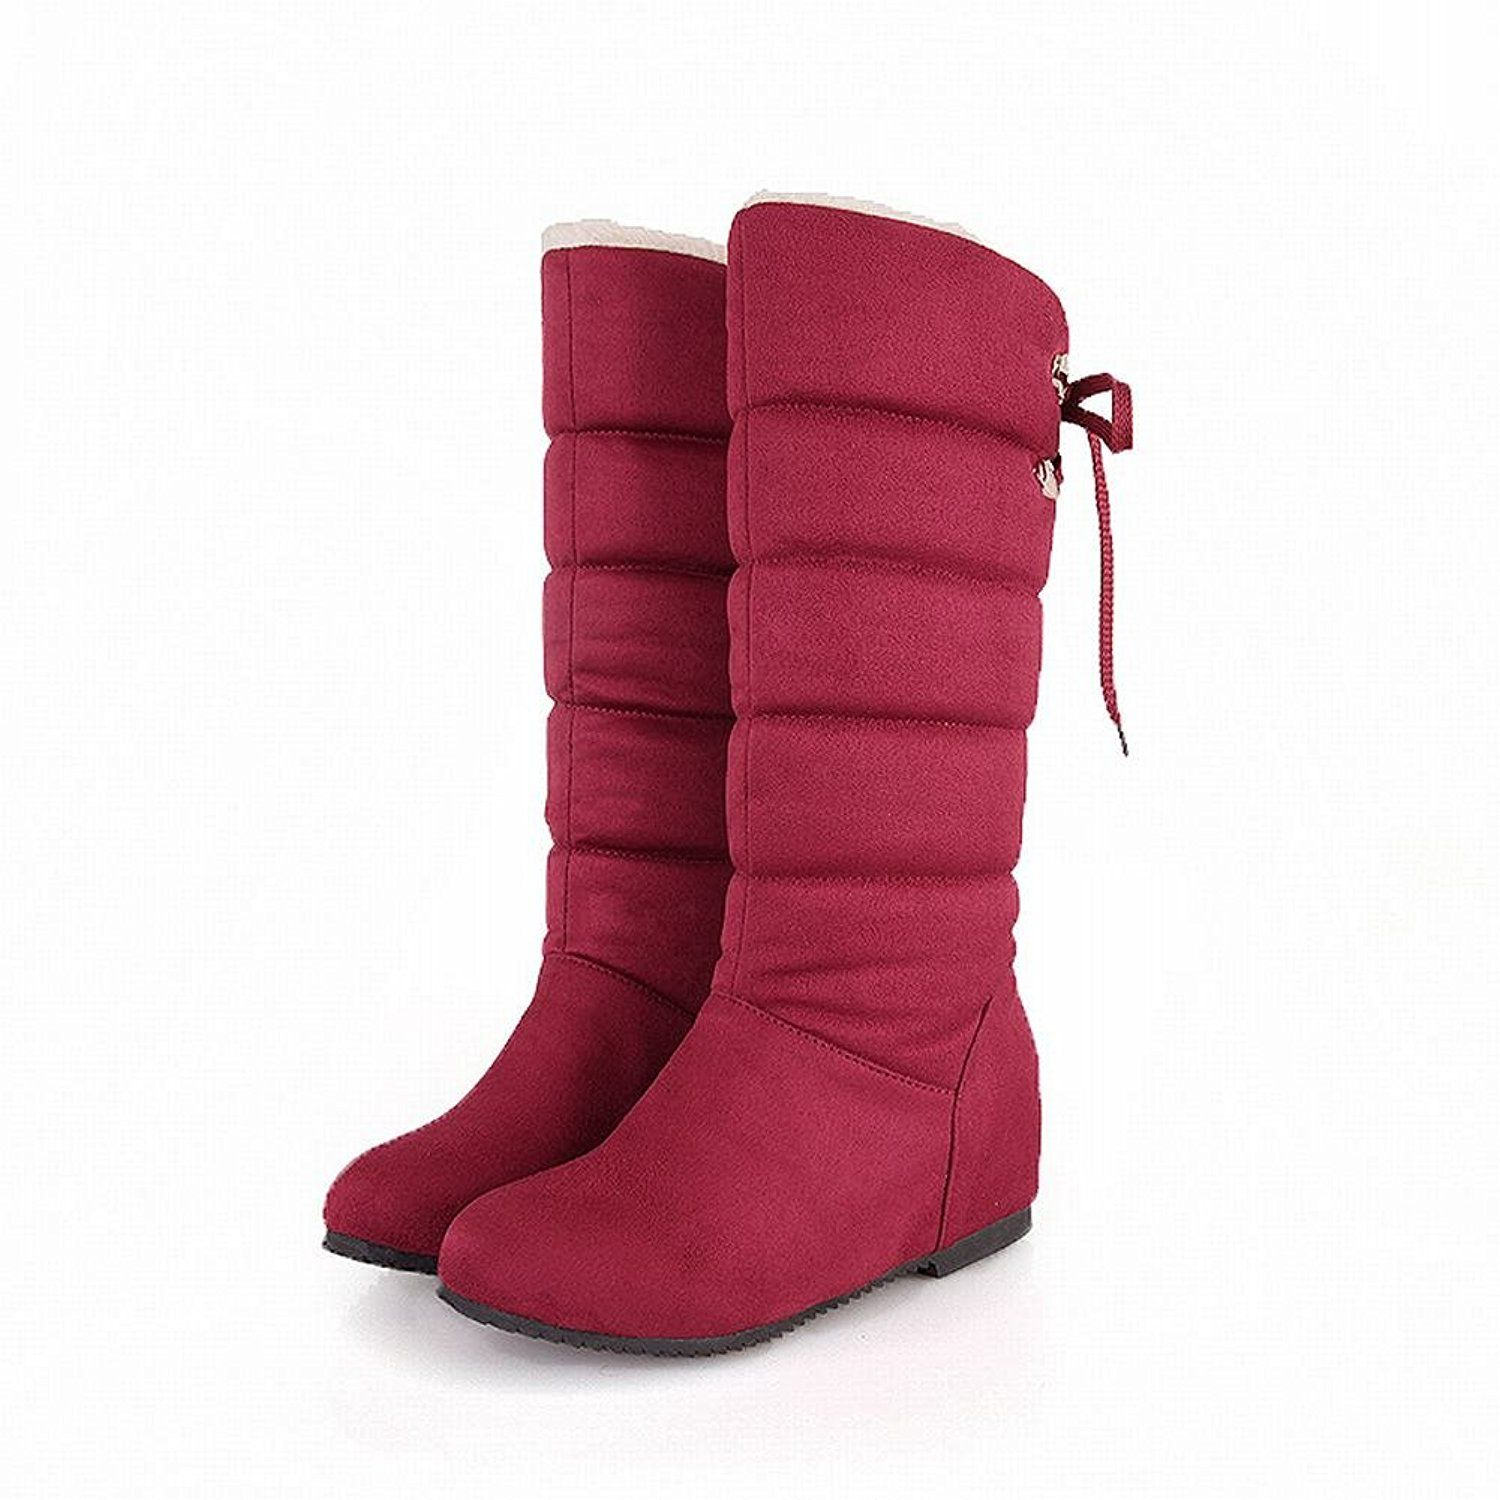 Women's Lace up Warm Fashion Comfort Cold Weather Hidden Wedge Heel Snow Boots